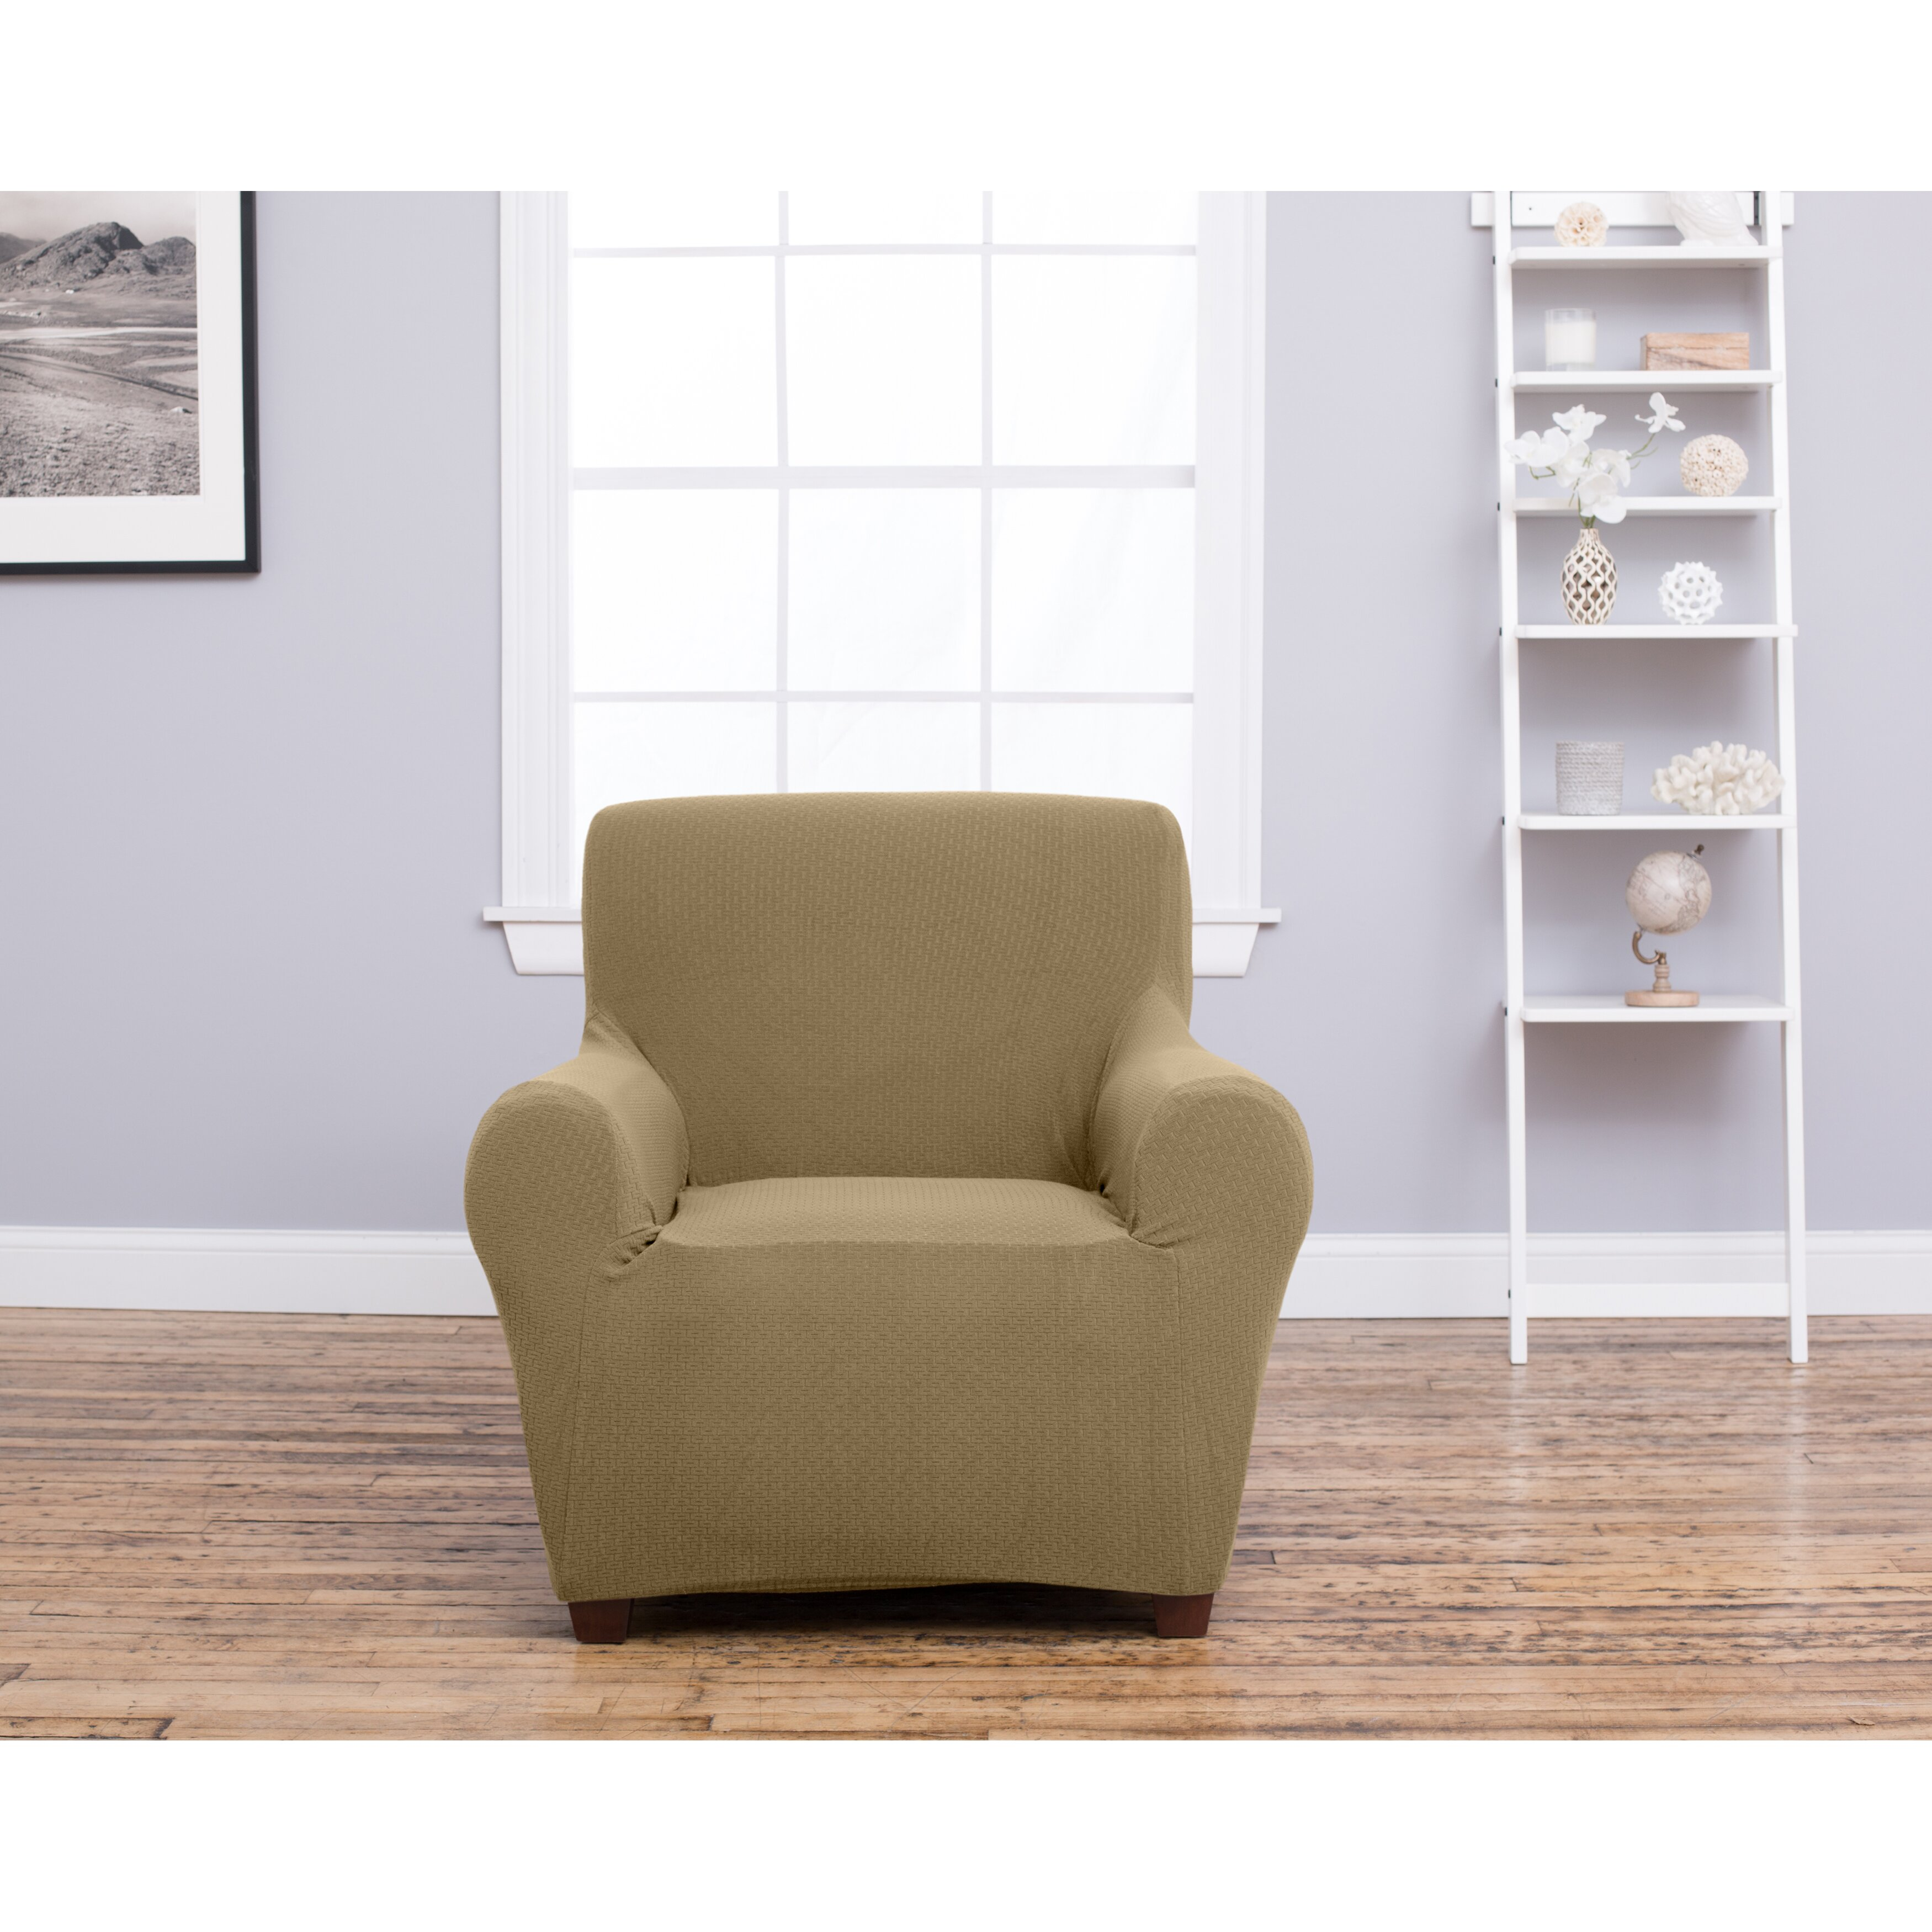 How To Make An Armchair Slipcover 28 Images Armchair Slipcovers The Slipcover Maker